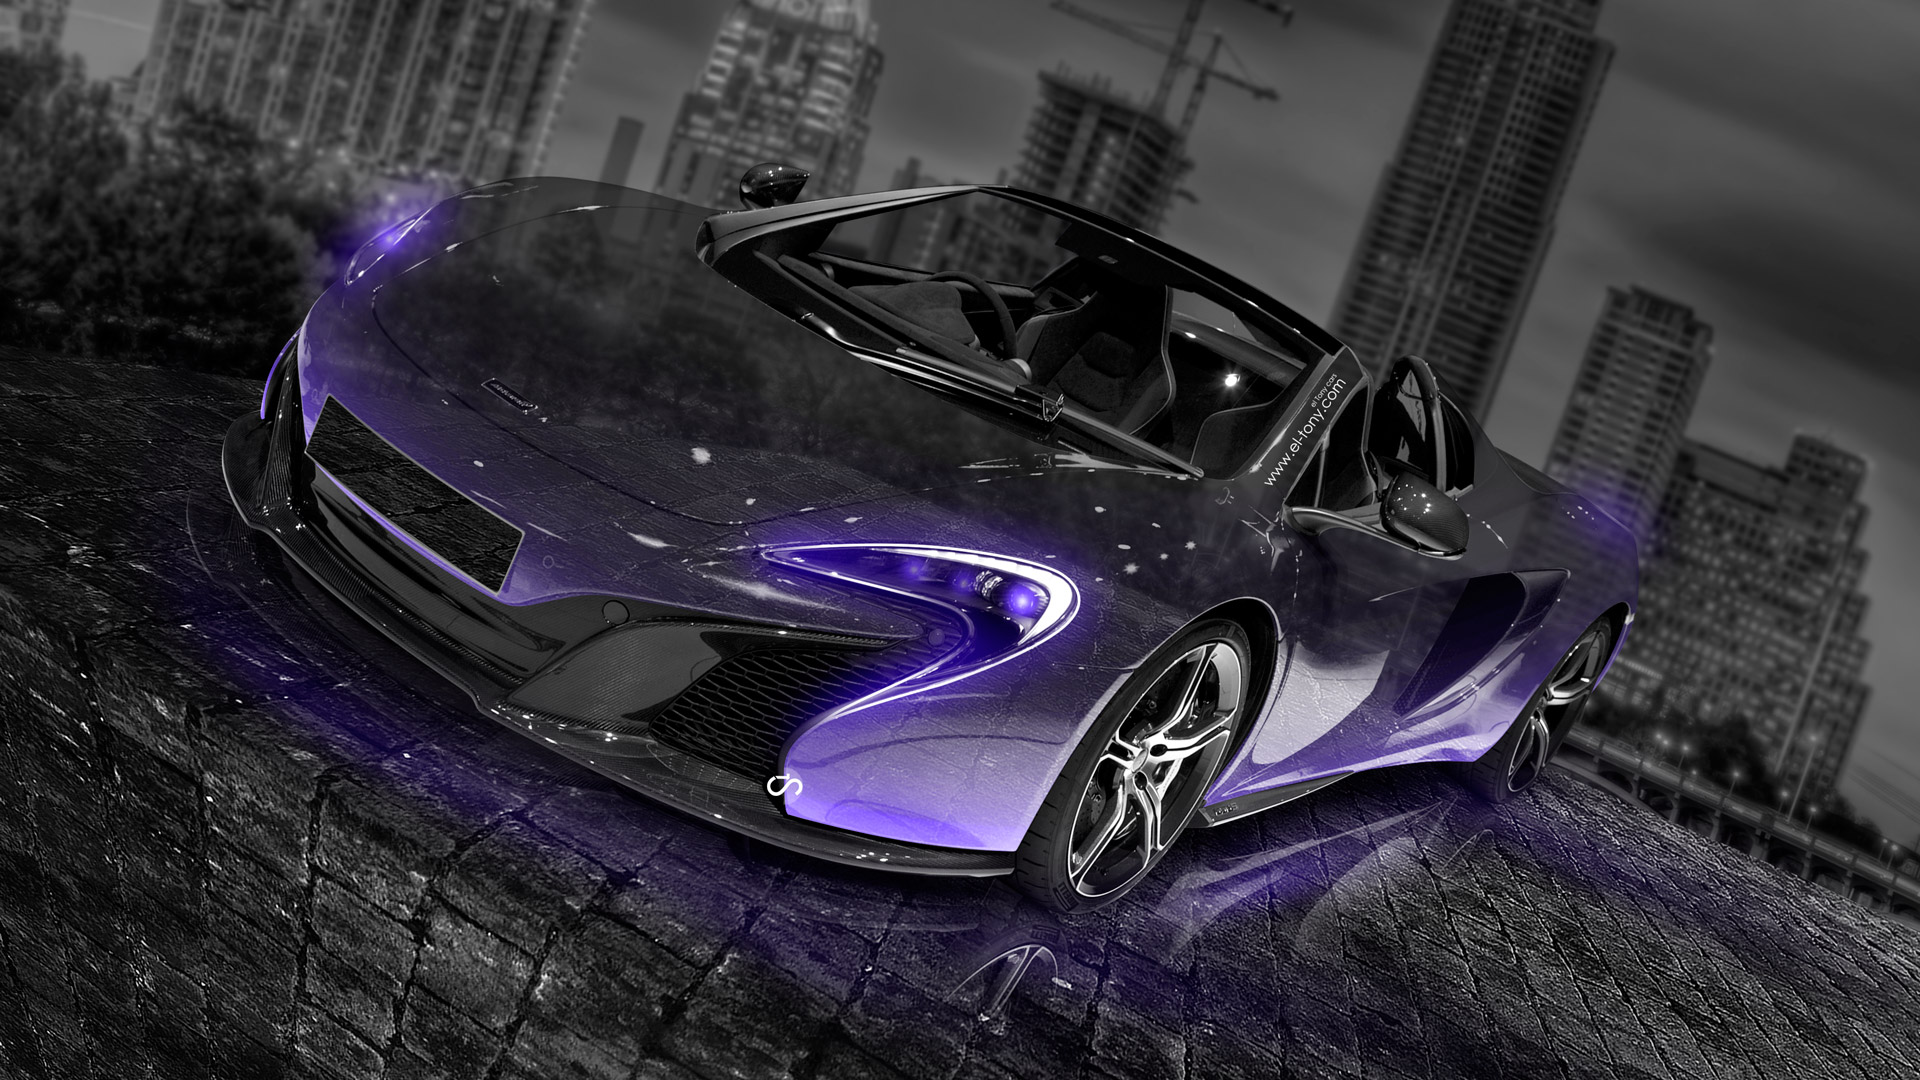 Delicieux McLaren 650S Spider Crystal City Car 2014 Violet